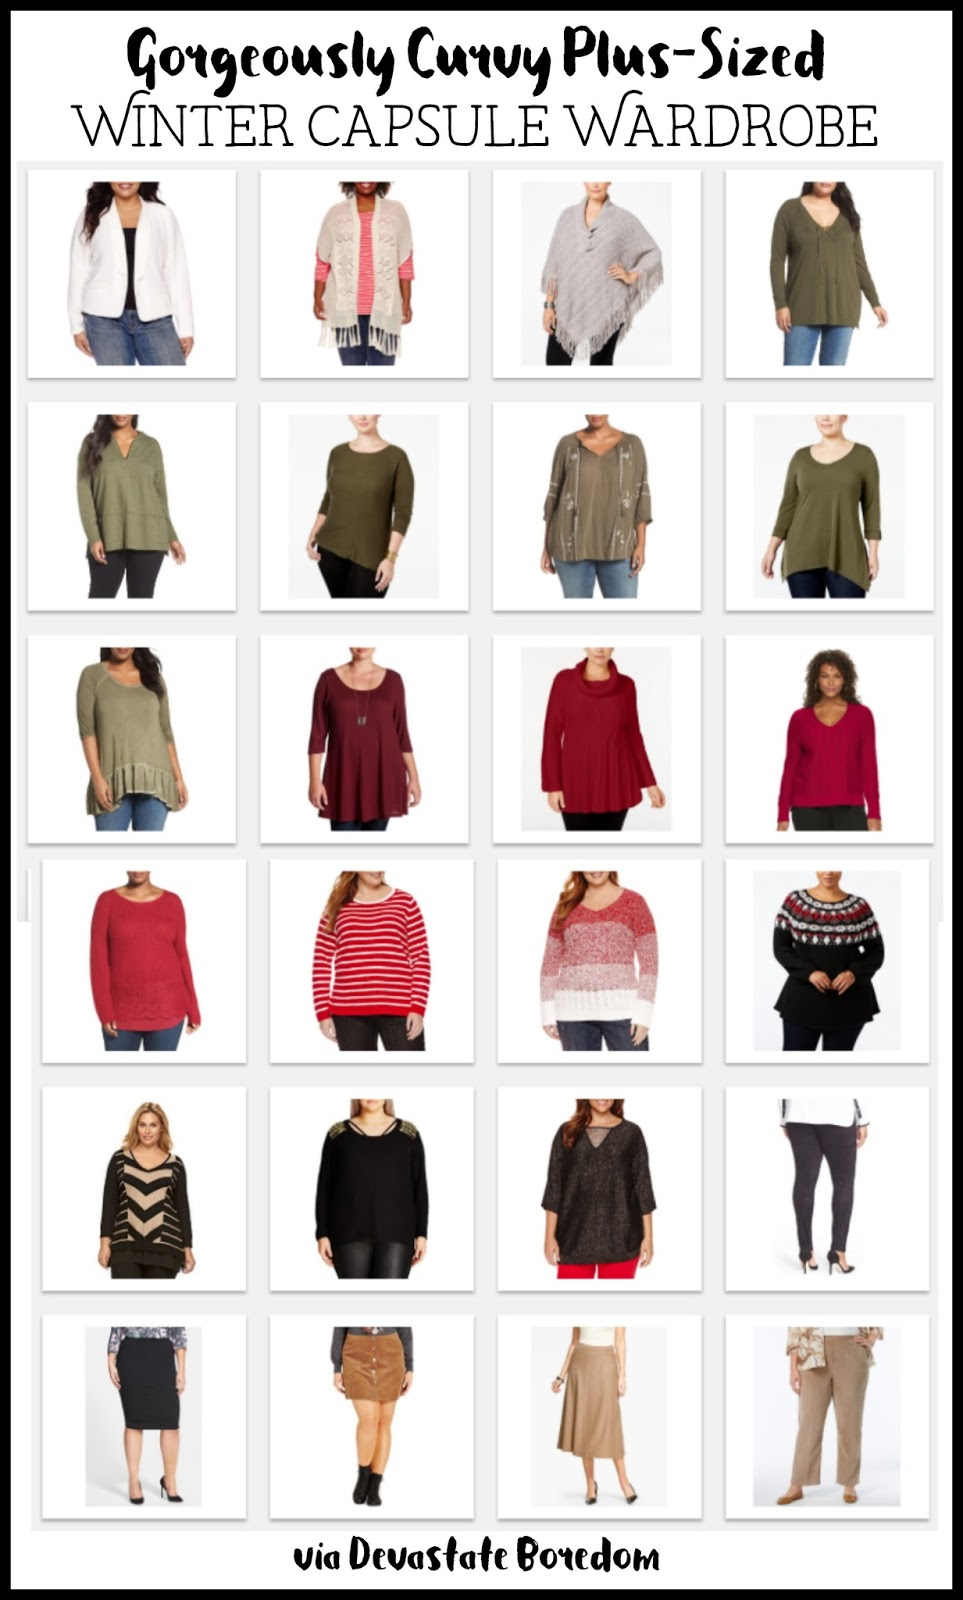 24 items = 165+ outfits, whaaaaaat? These mix-and-match outfits are so flattering for ladies with curves! Plus-size women winter capsule wardrobe ideas and inspiration -- colorful style, minimalist fashion, sample cold-weather French closet for curvy ladies!  Cozy plus-sized outfits with balanced bases and layering! via Devastate Boredom